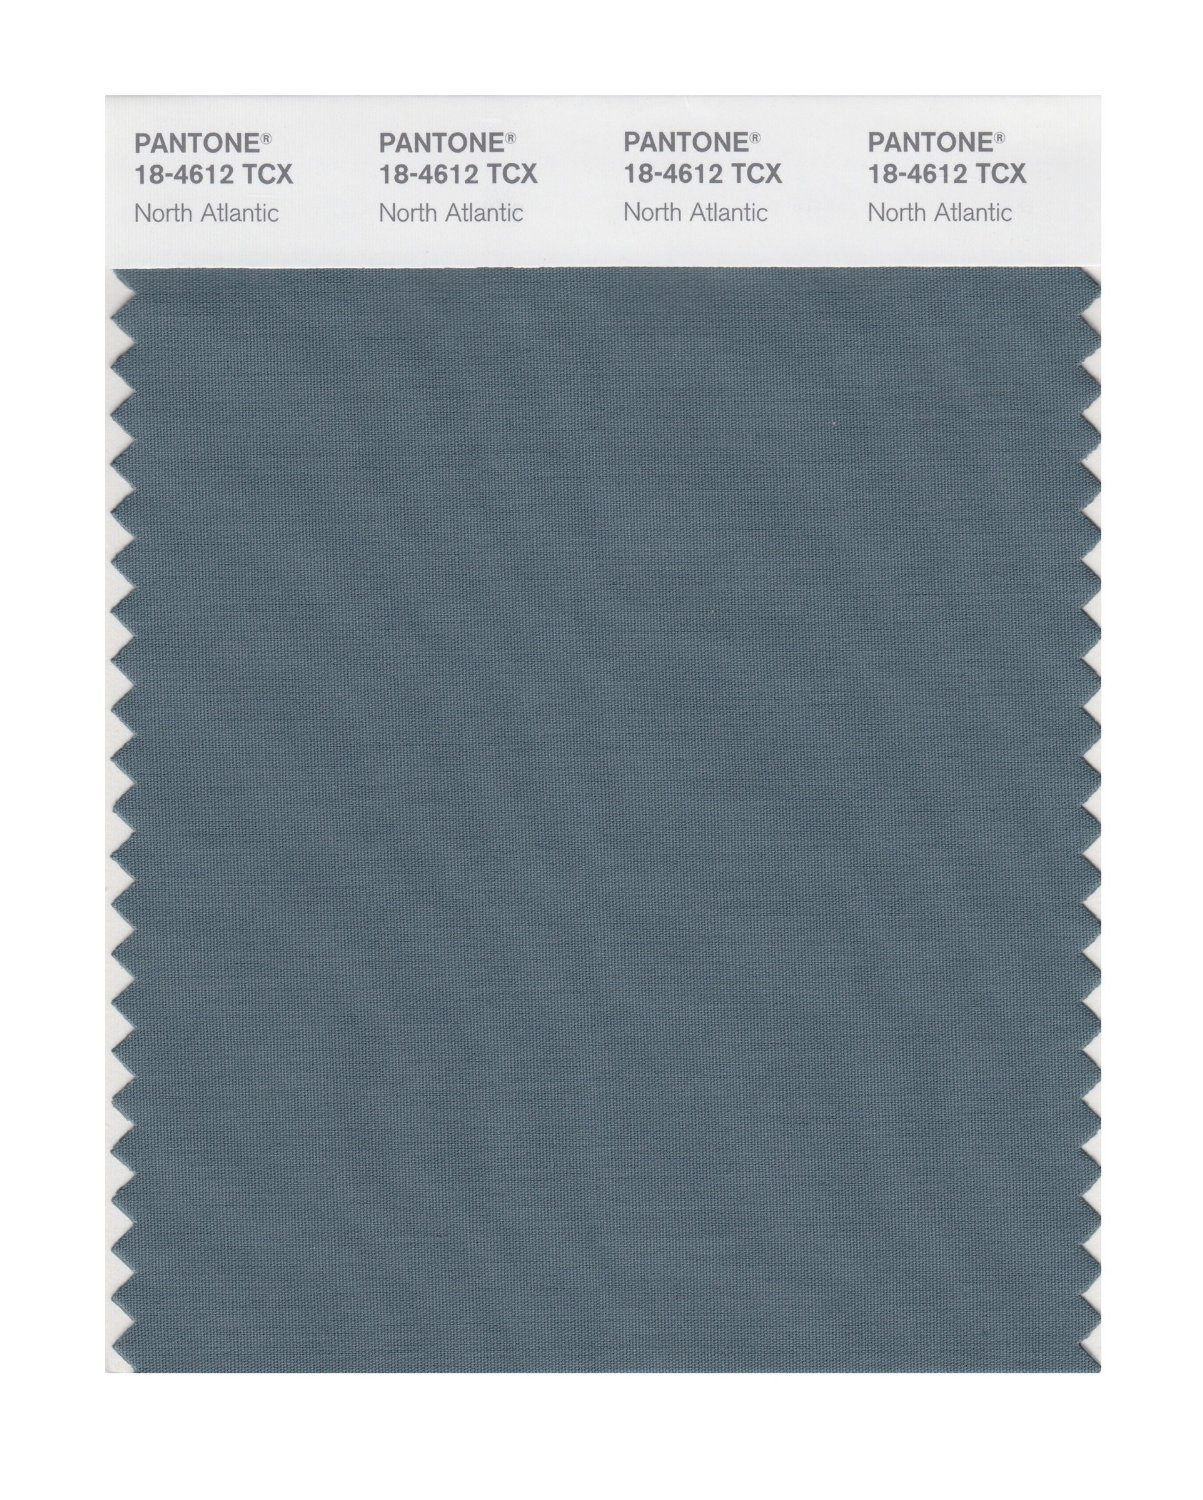 Pantone Smart Swatch 18-4612 North Atlantic